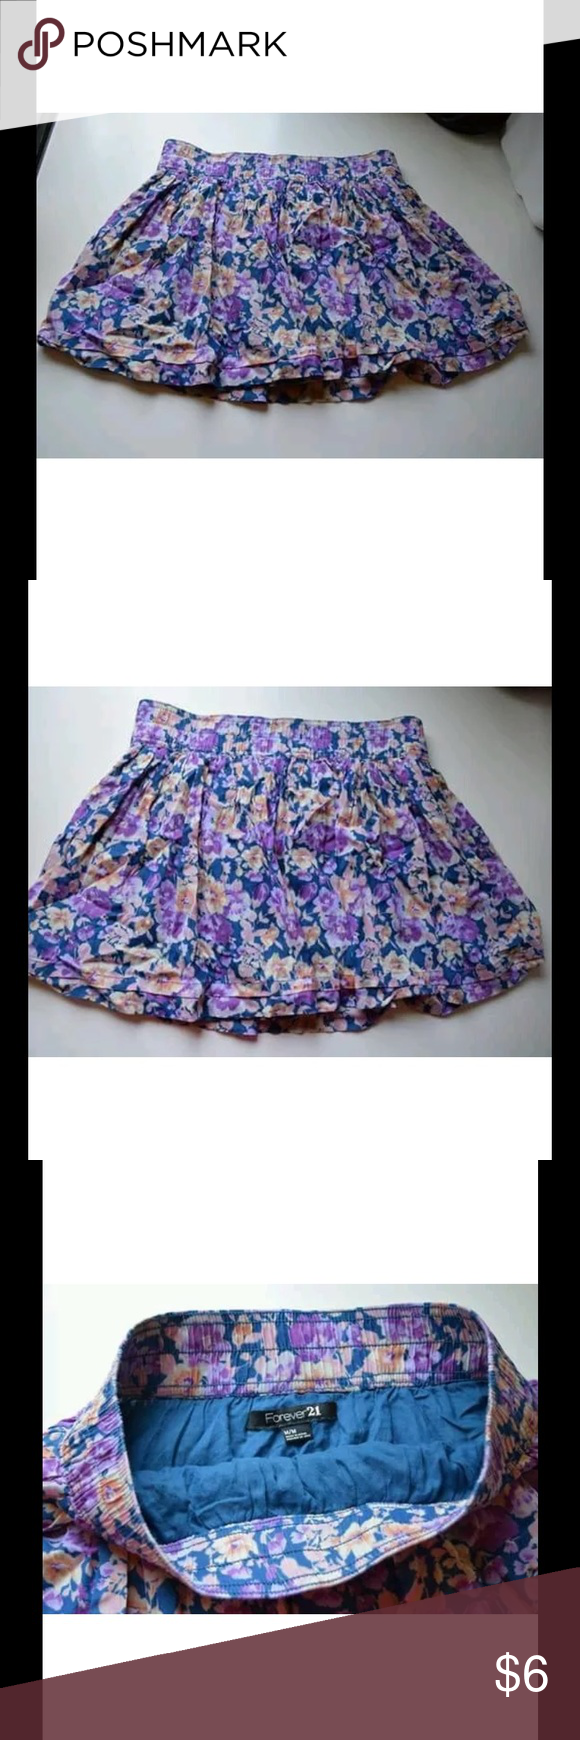 Forever 21 Floral Skirt Size M Shell: 65% viscose, 35% cotton. Linning: 100% cotton. In good condition Forever 21 Skirts Mini